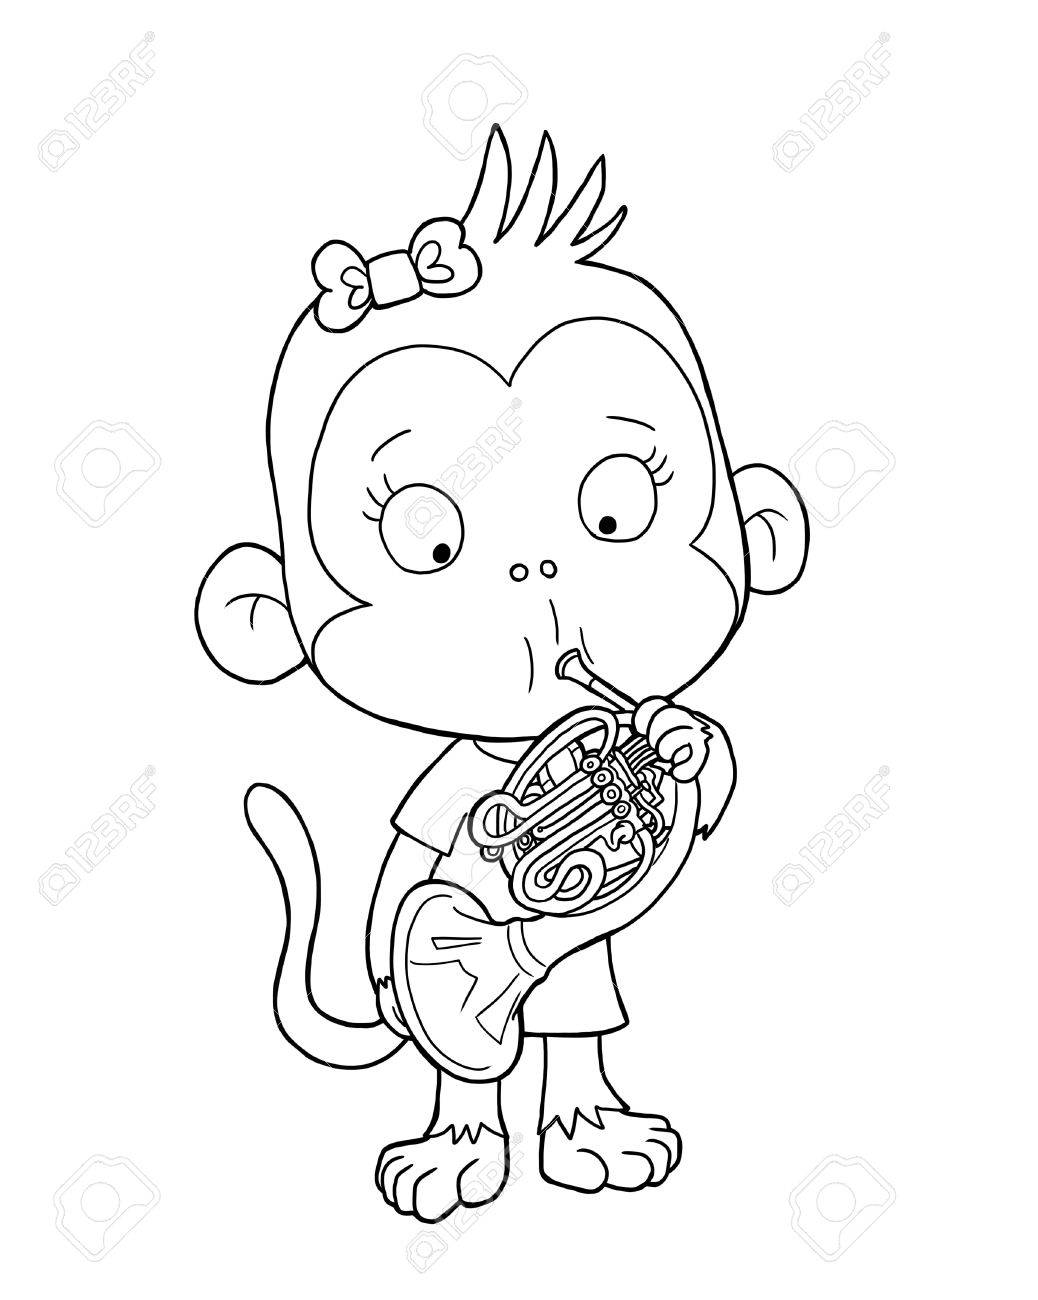 Cute monkey playing french horn coloring page stock photo 69128115